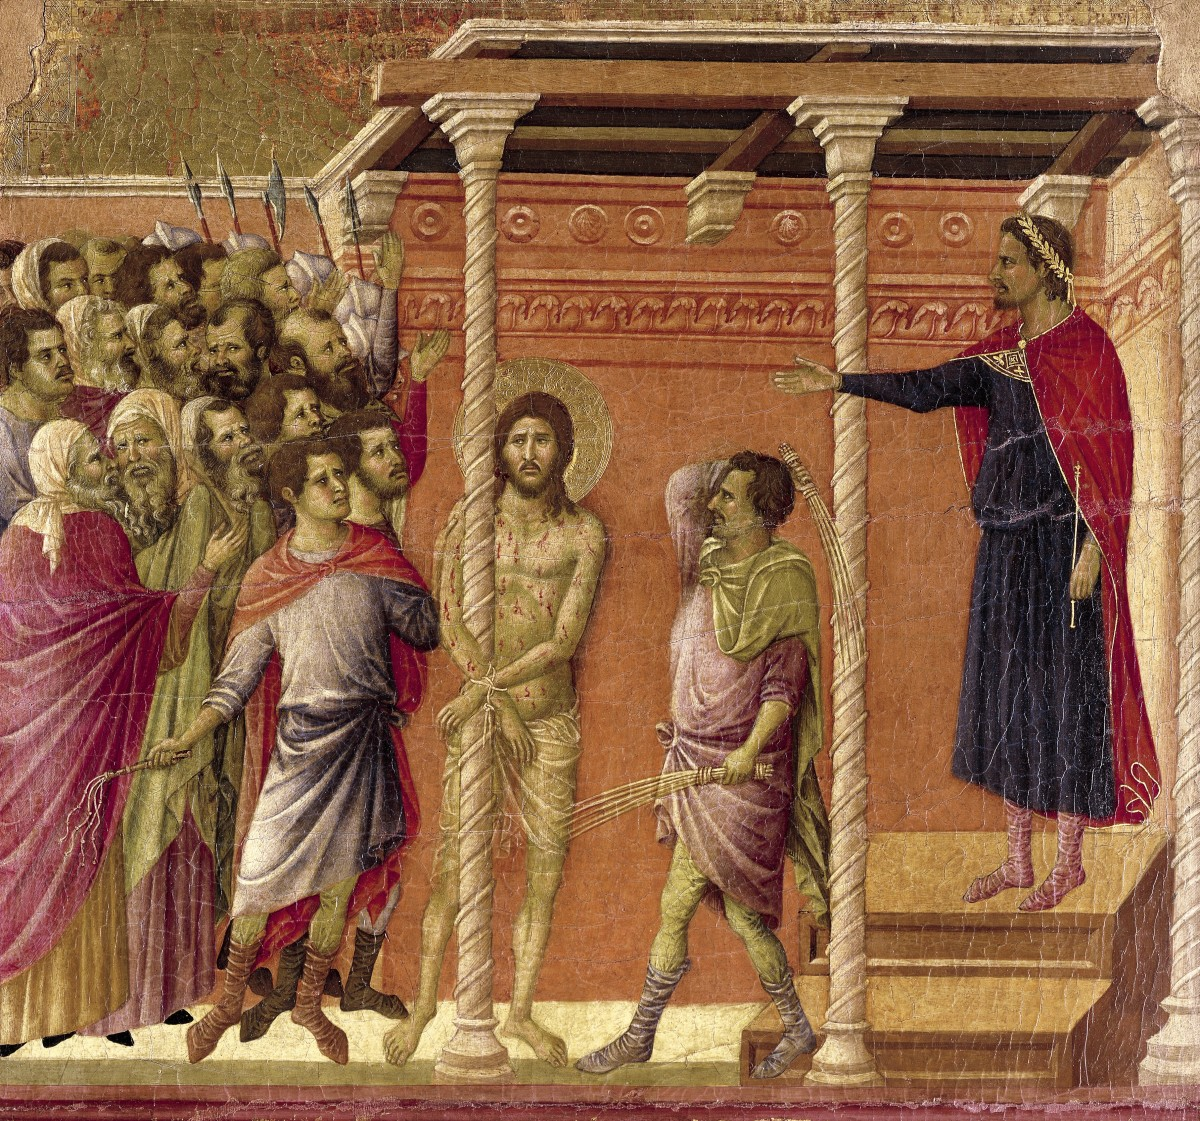 Why Did Pontius Pilate Have Jesus Executed? - HISTORY